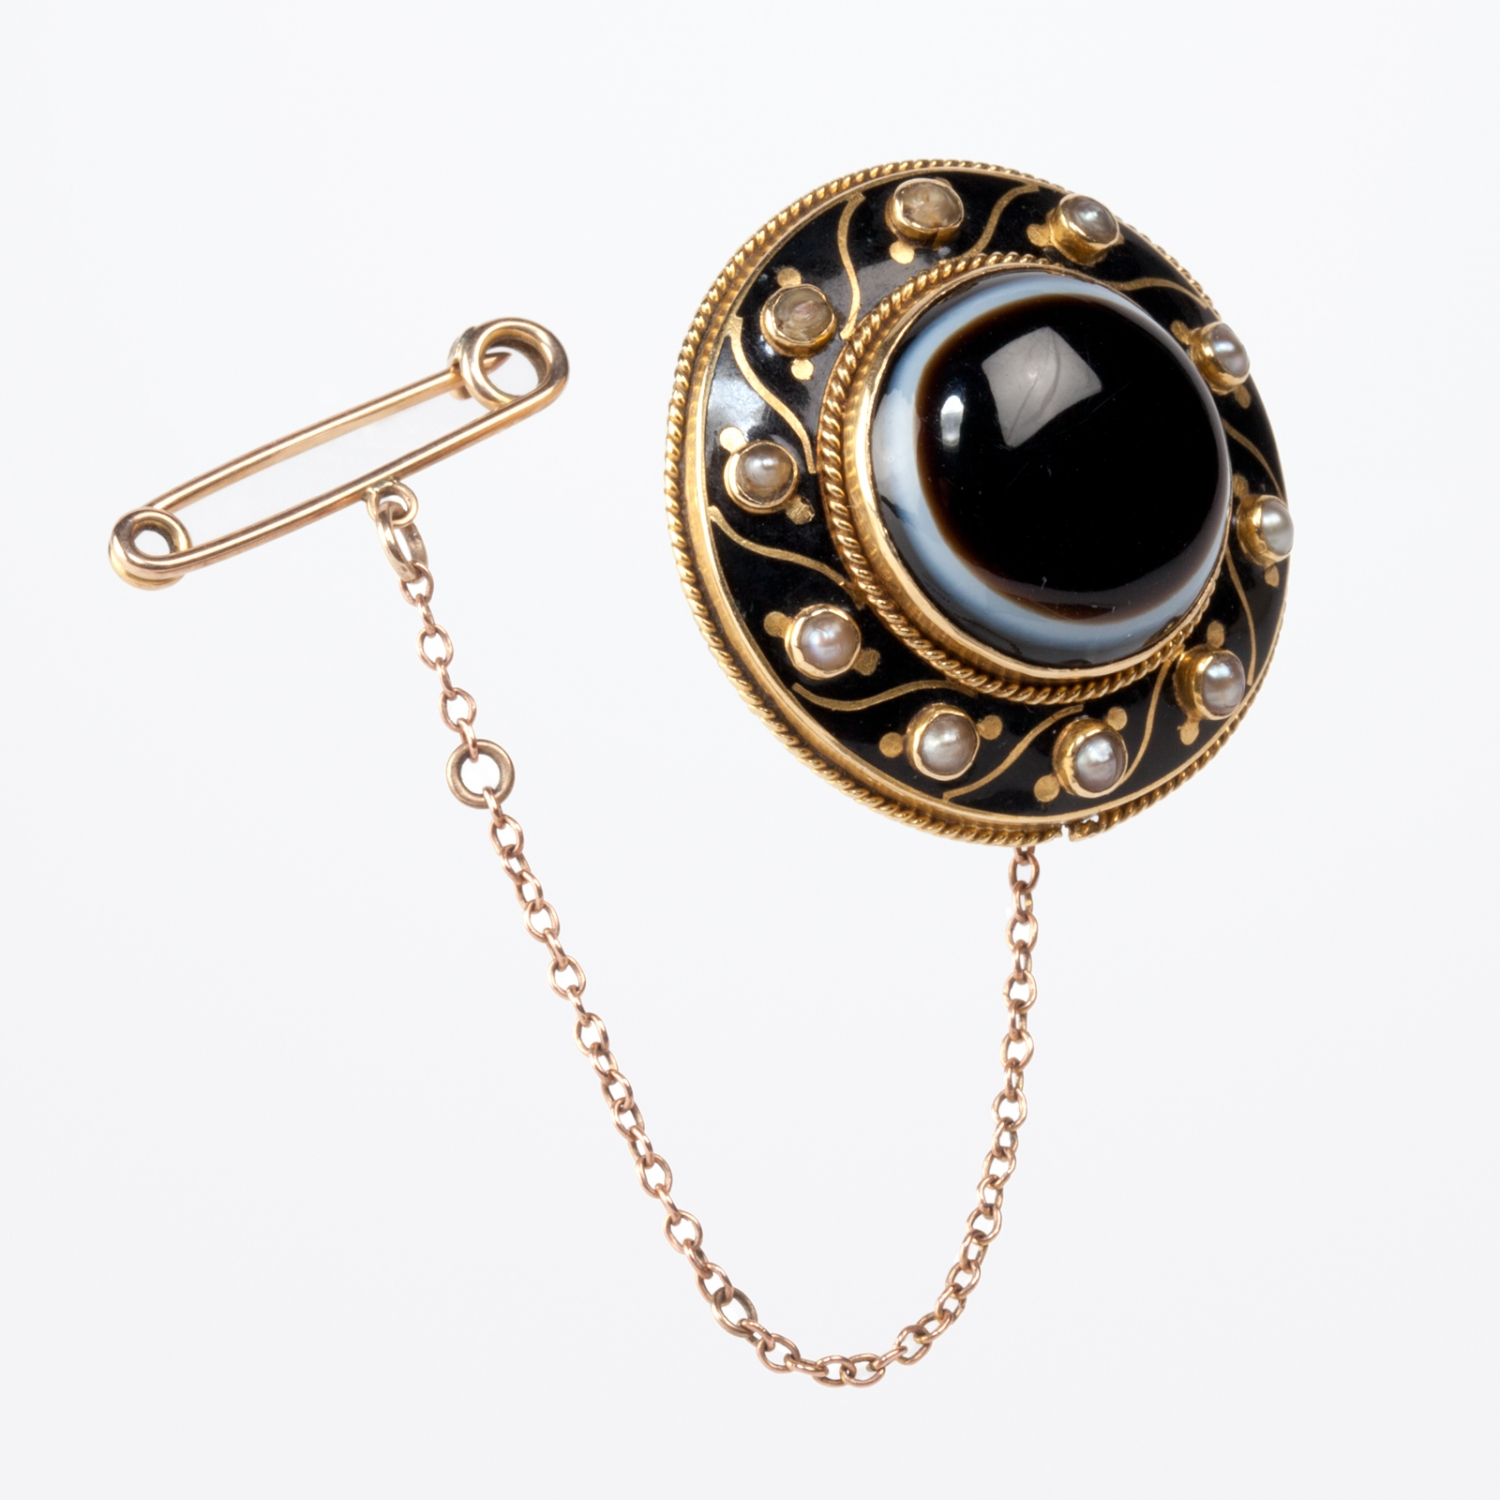 A circular gold and black enamel brooch set with central dark banded onyx and eleven seed pearls around circumference.